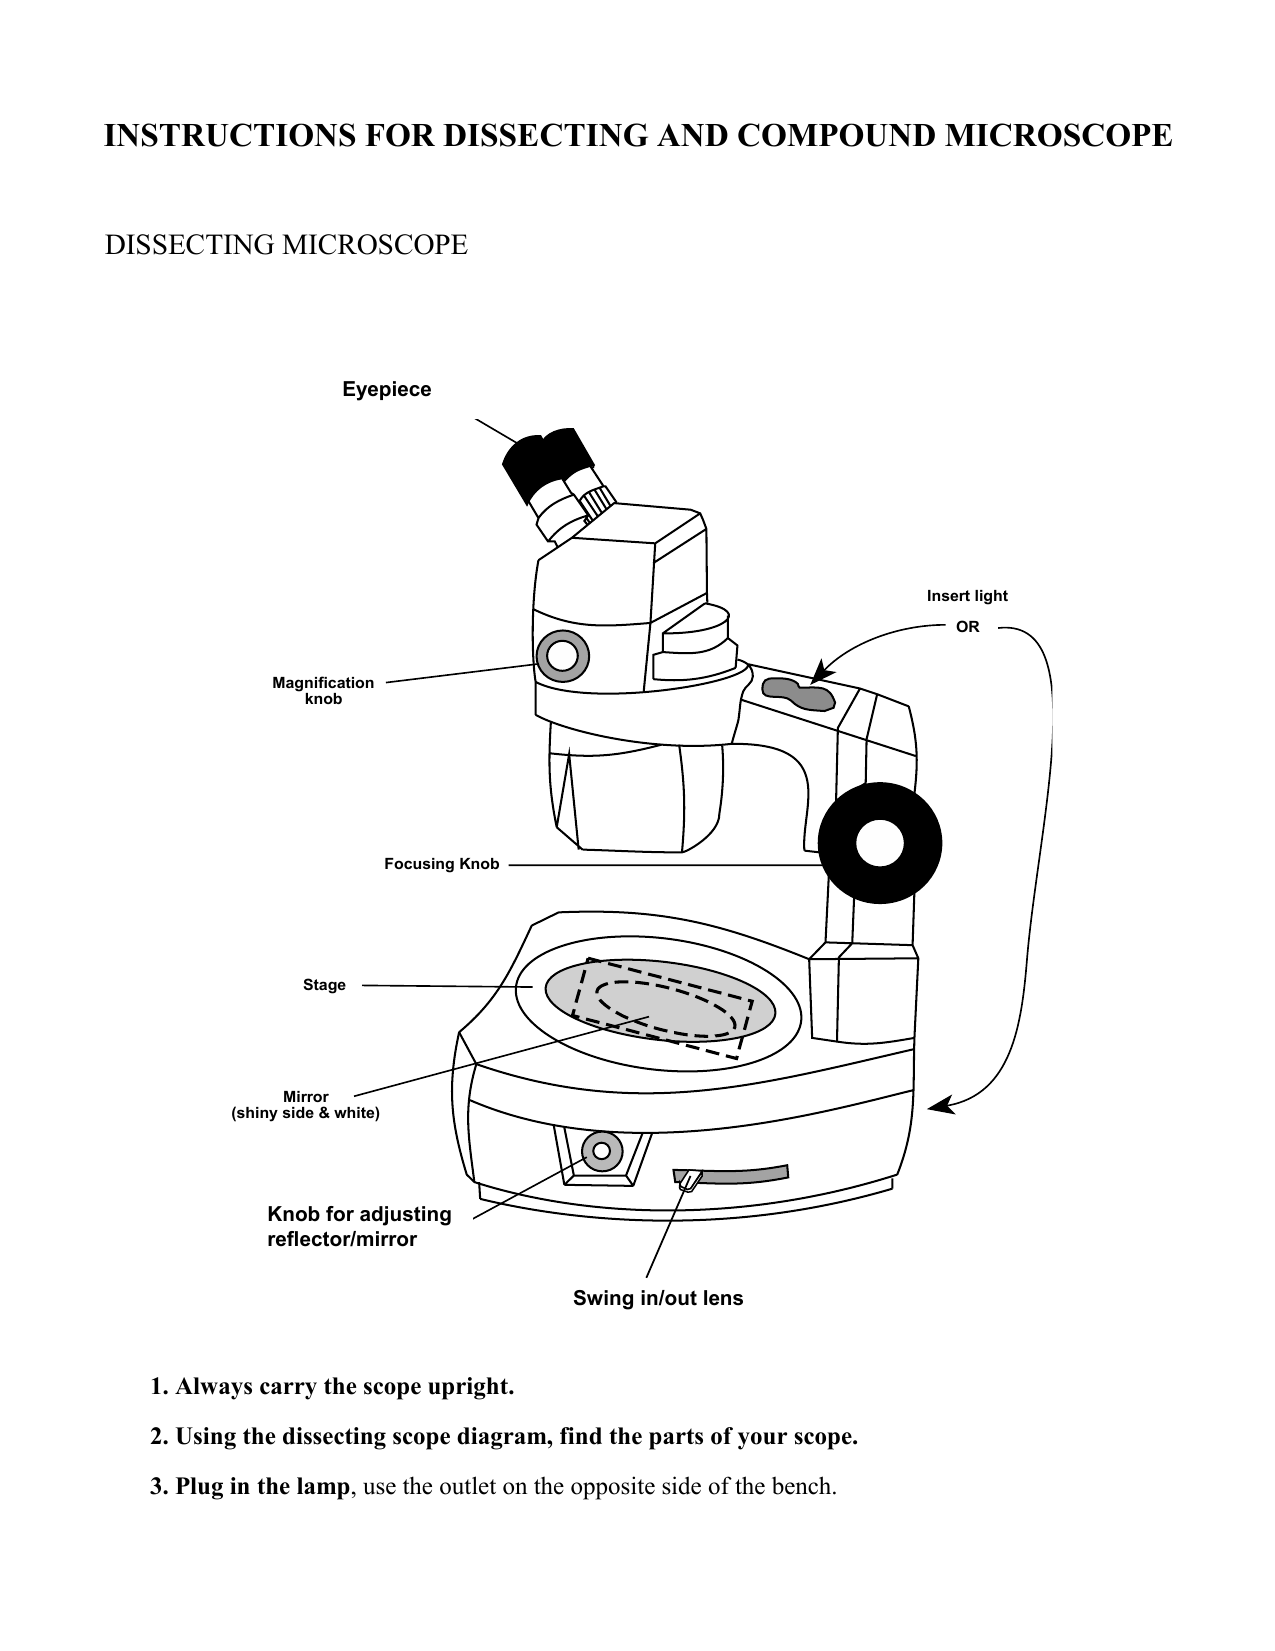 Instructions for dissecting and compound microscope dissecting instructions for dissecting and compound microscope dissecting microscope the dissecting microscope ccuart Gallery